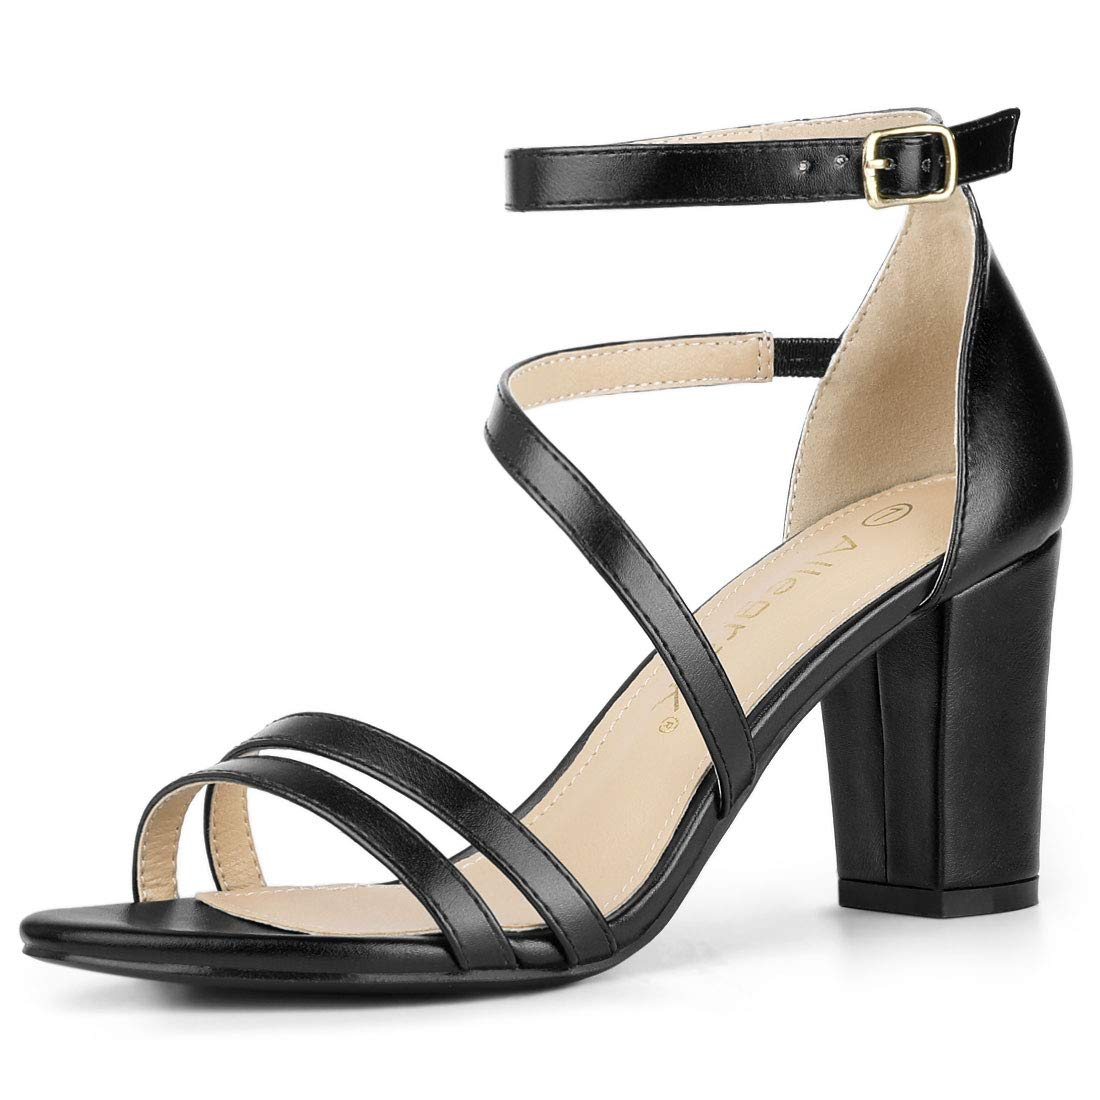 8a1a4aa15486d Amazon.com | Allegra K Women's Open Toe Ankle Strap Dress Block Heeled  Sandals | Heeled Sandals